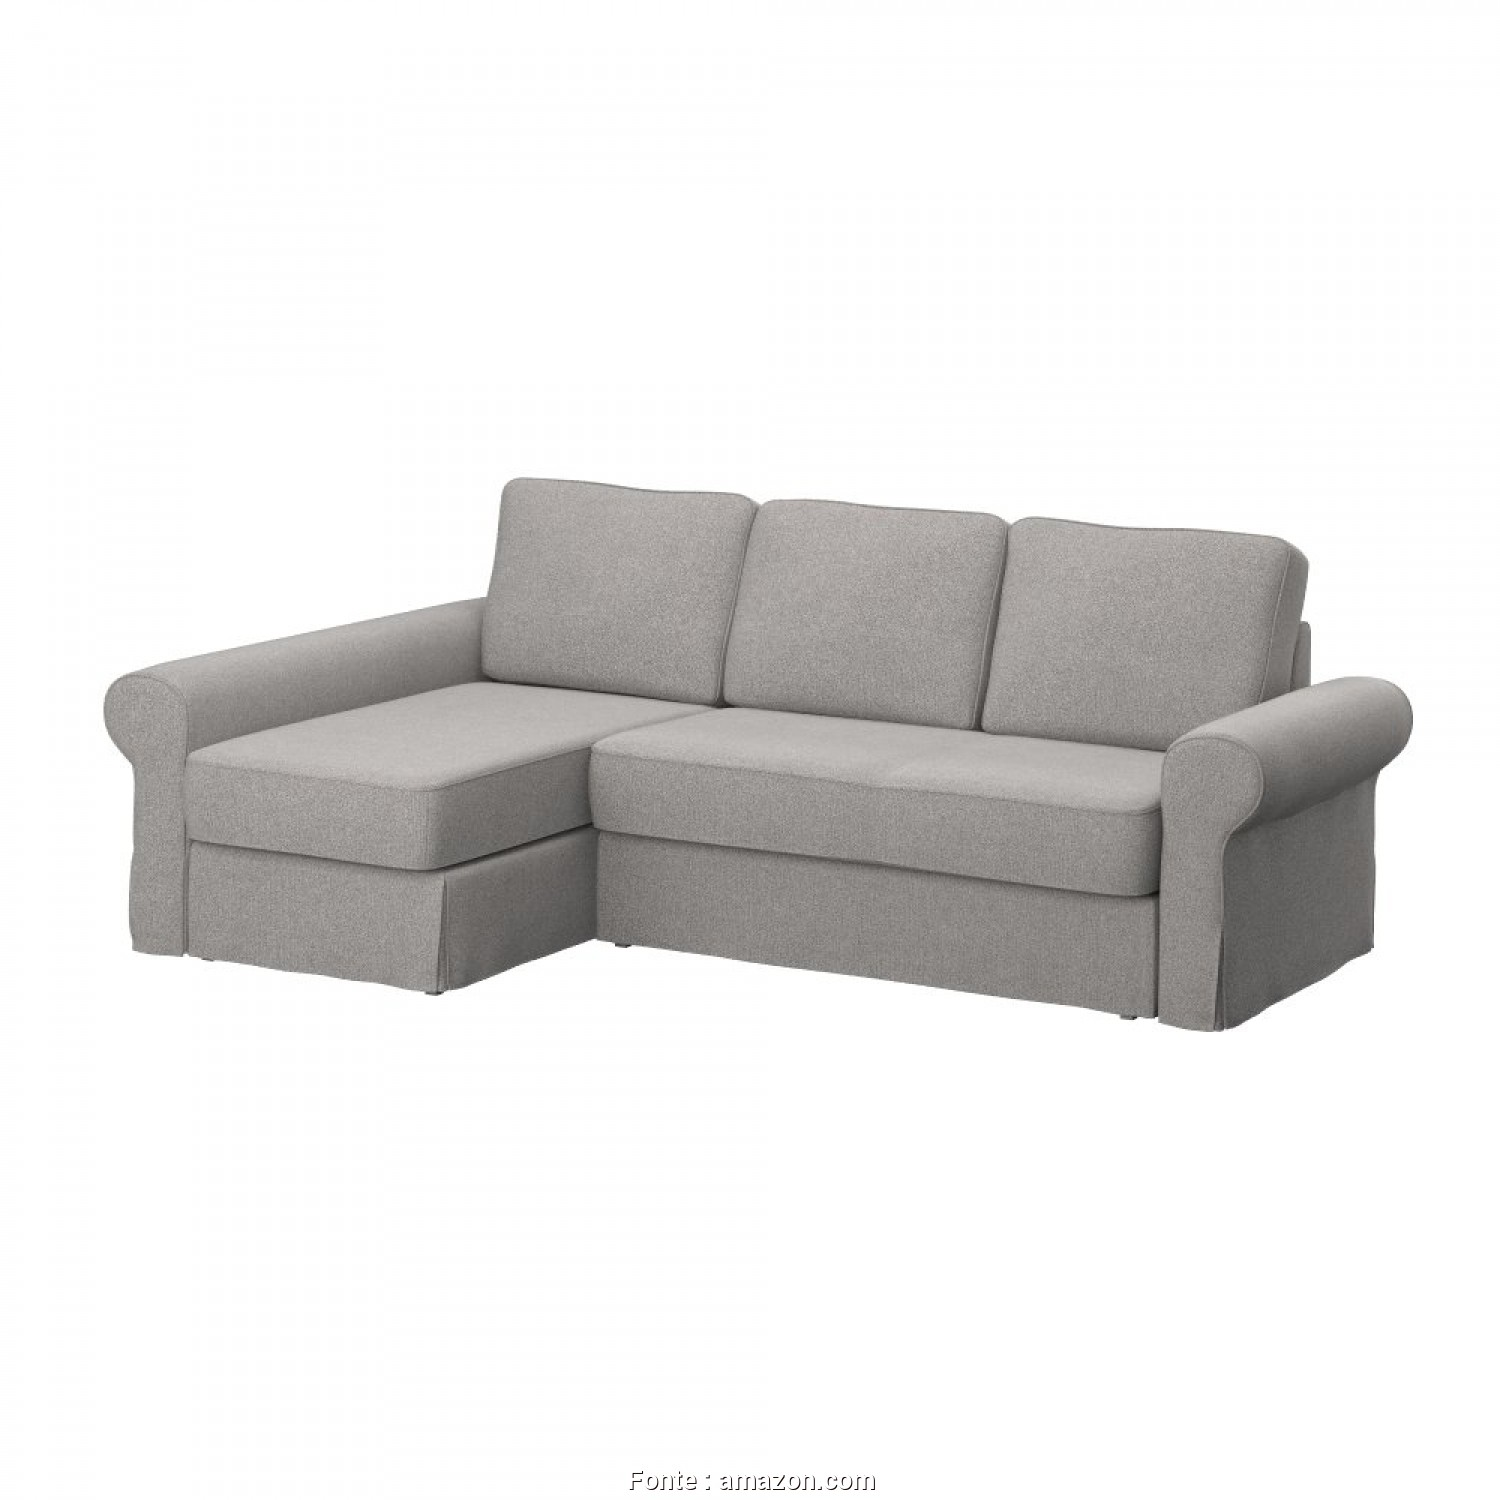 Backabro Ikea Couch, Migliore Amazon.Com: Soferia, Replacement Cover, IKEA BACKABRO Sofa With Chaise Longue, Glam Stone: Home & Kitchen